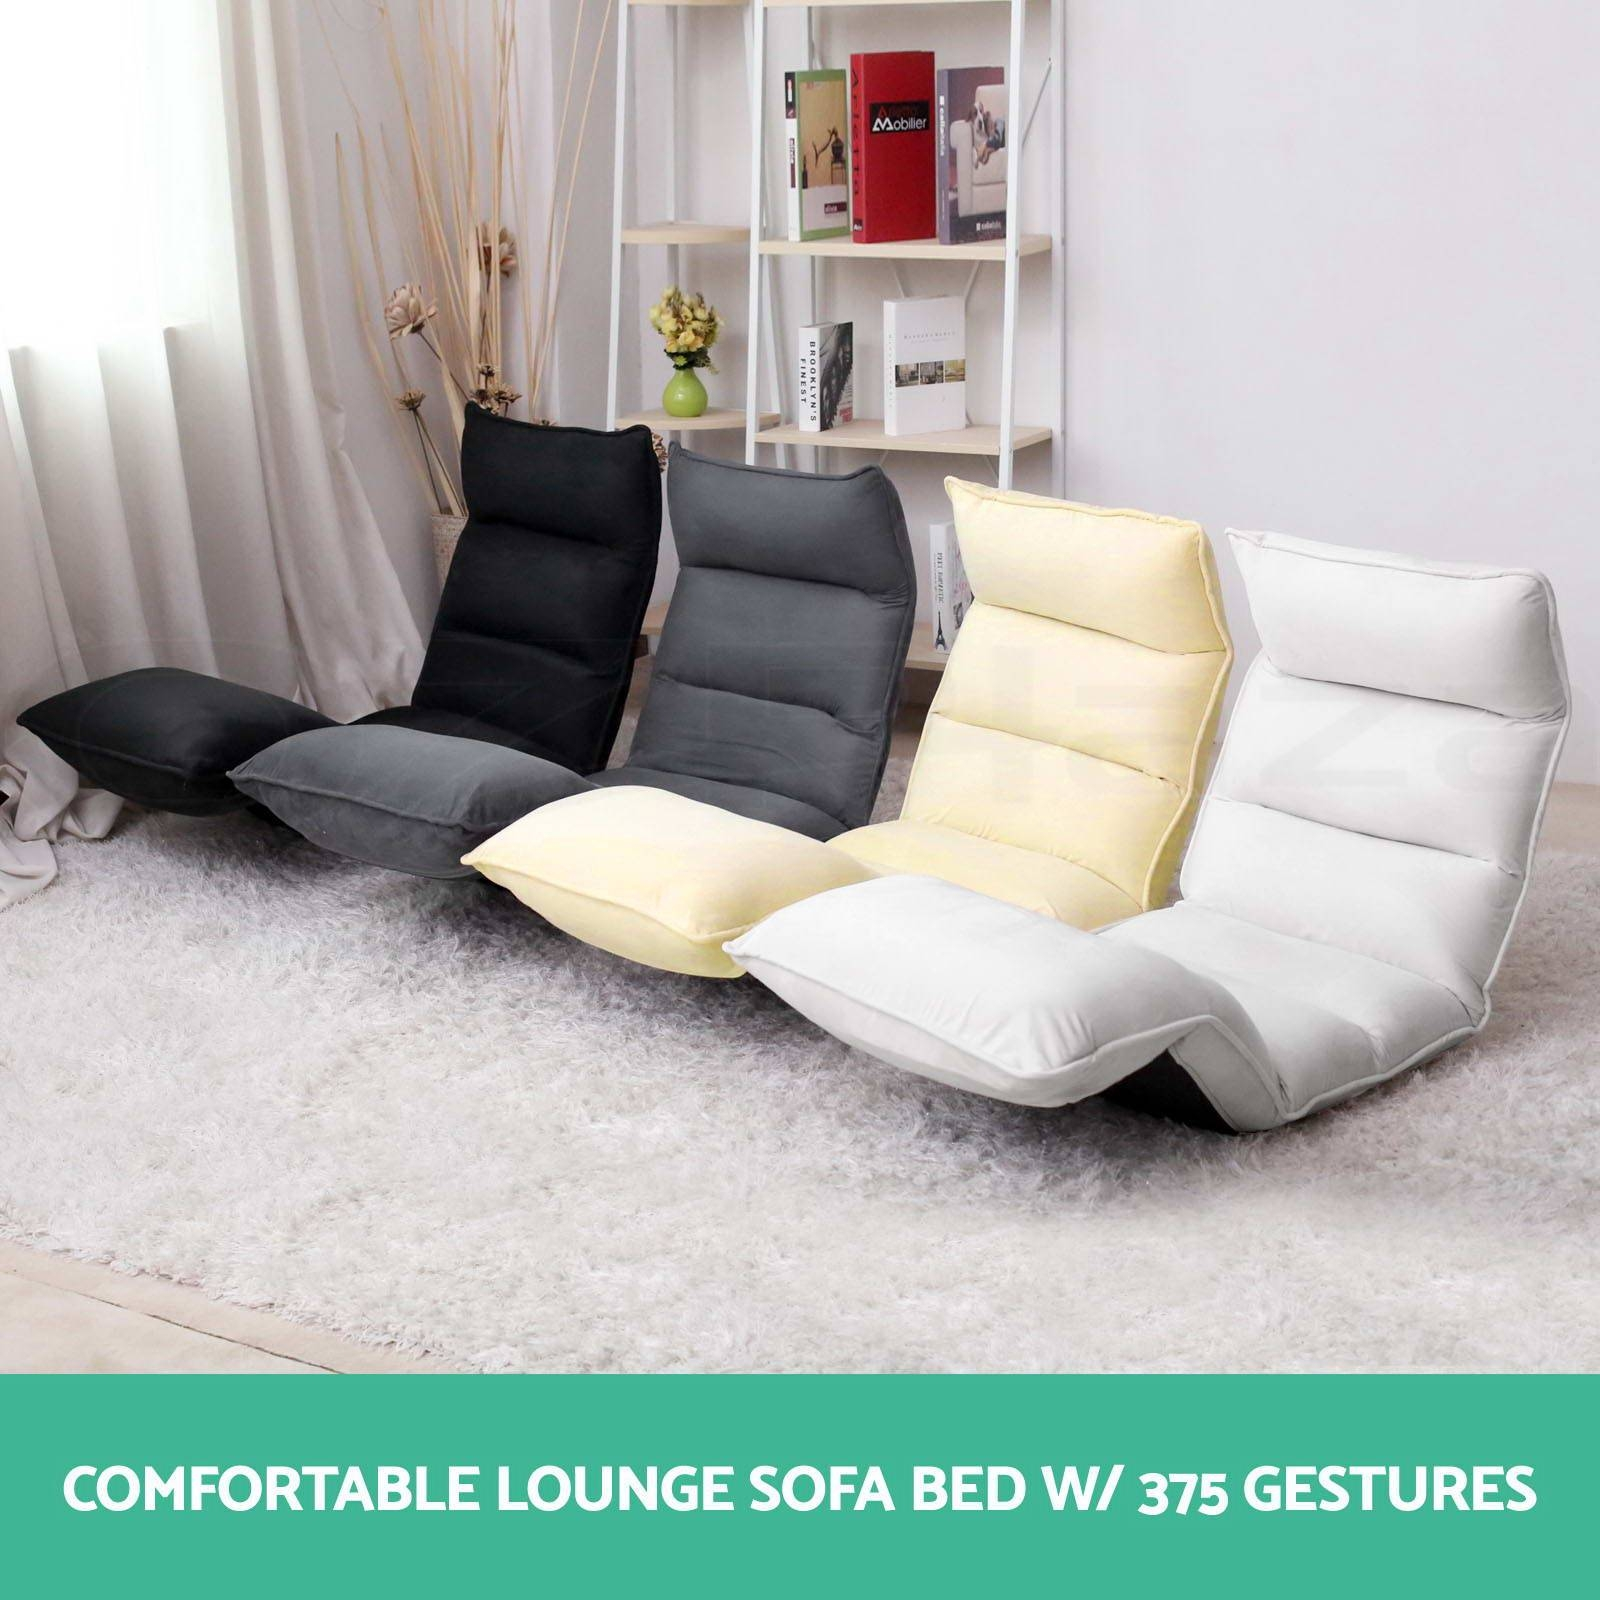 30 Best Ideas Of Sofa Lounger Beds